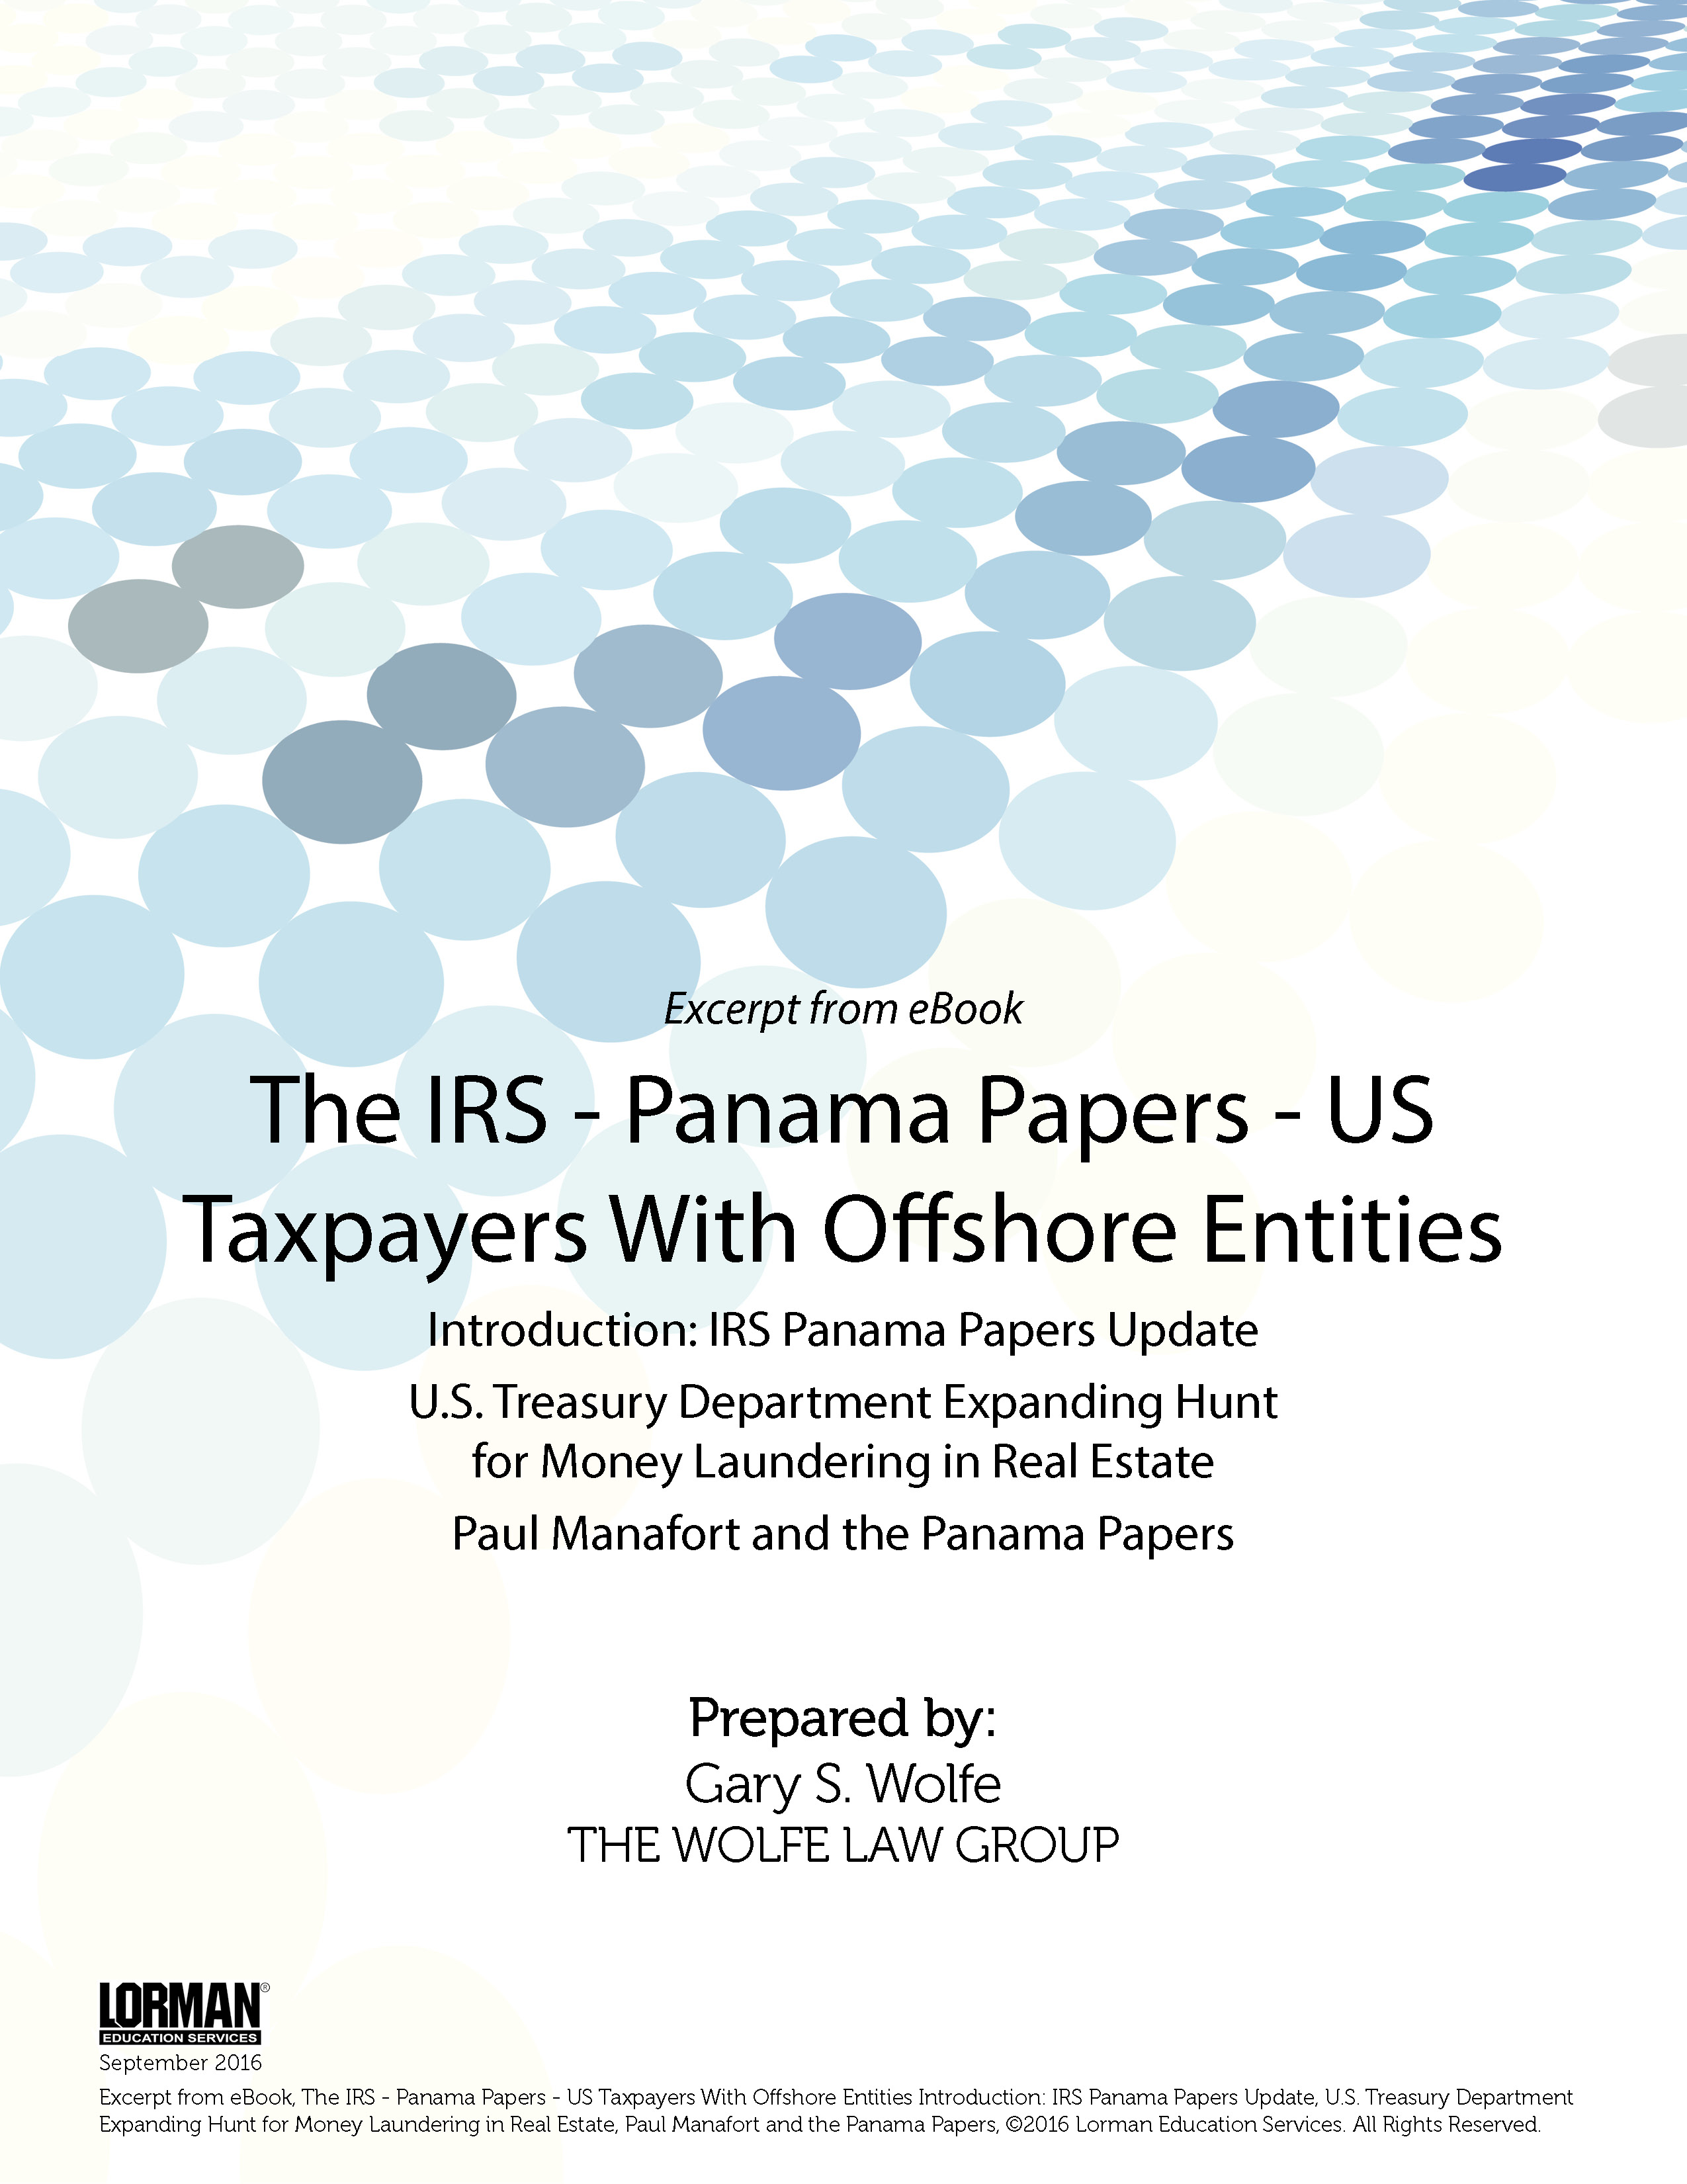 The IRS-Panama Papers Update - U.S. Treasury Department Expanding Hunt for Money Laundering in Real Estate; Paul Manafort and the Panama Papers